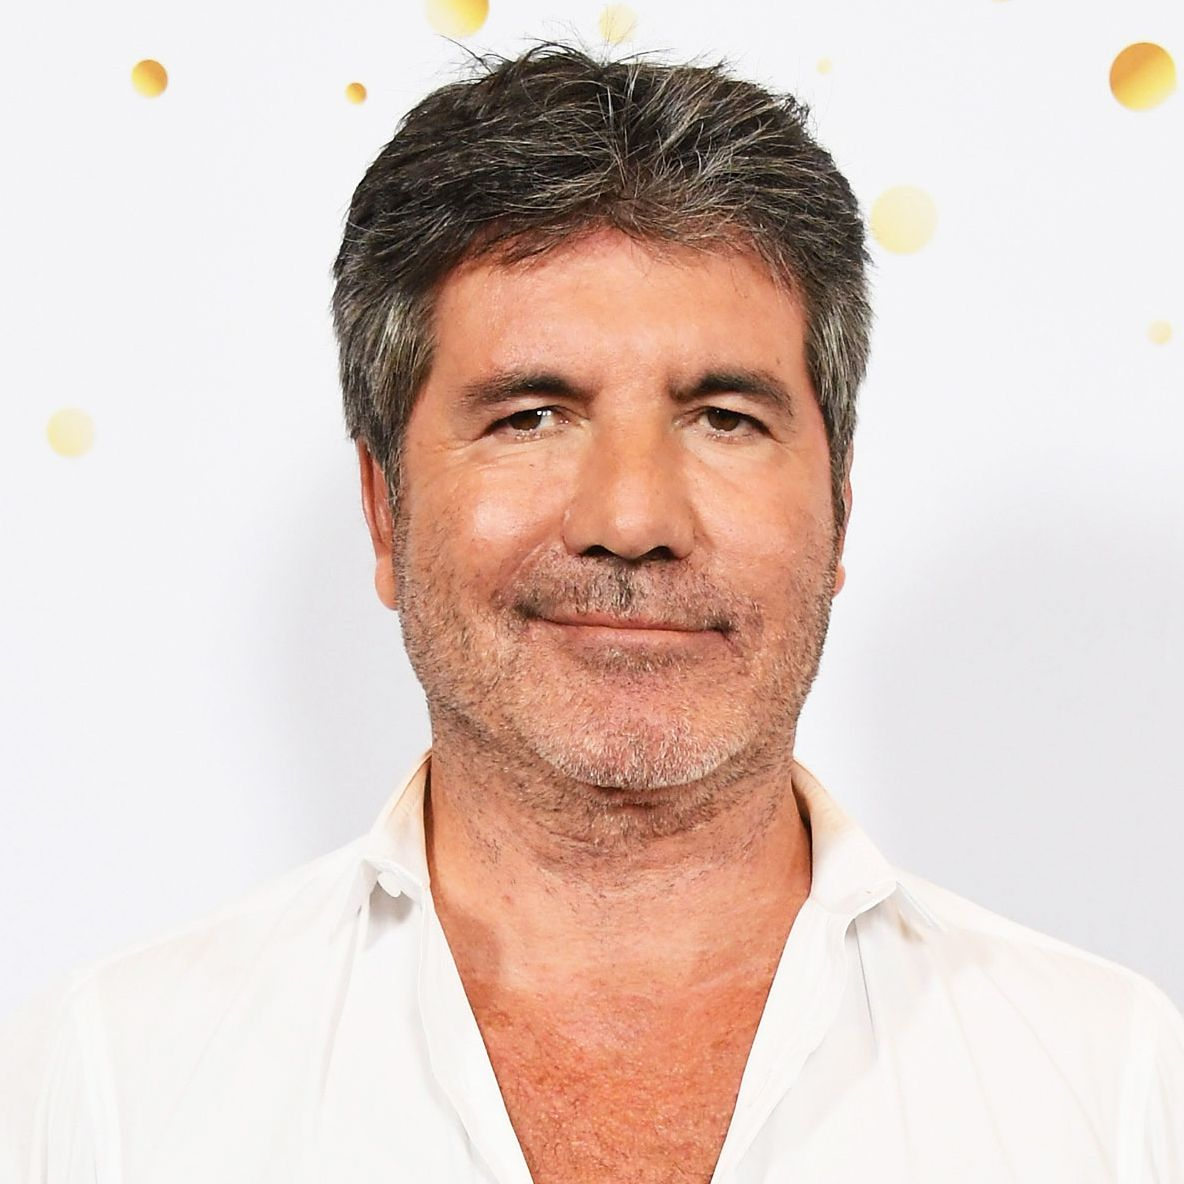 Simon Cowell Hospitalized With Broken Back After Bike Fall